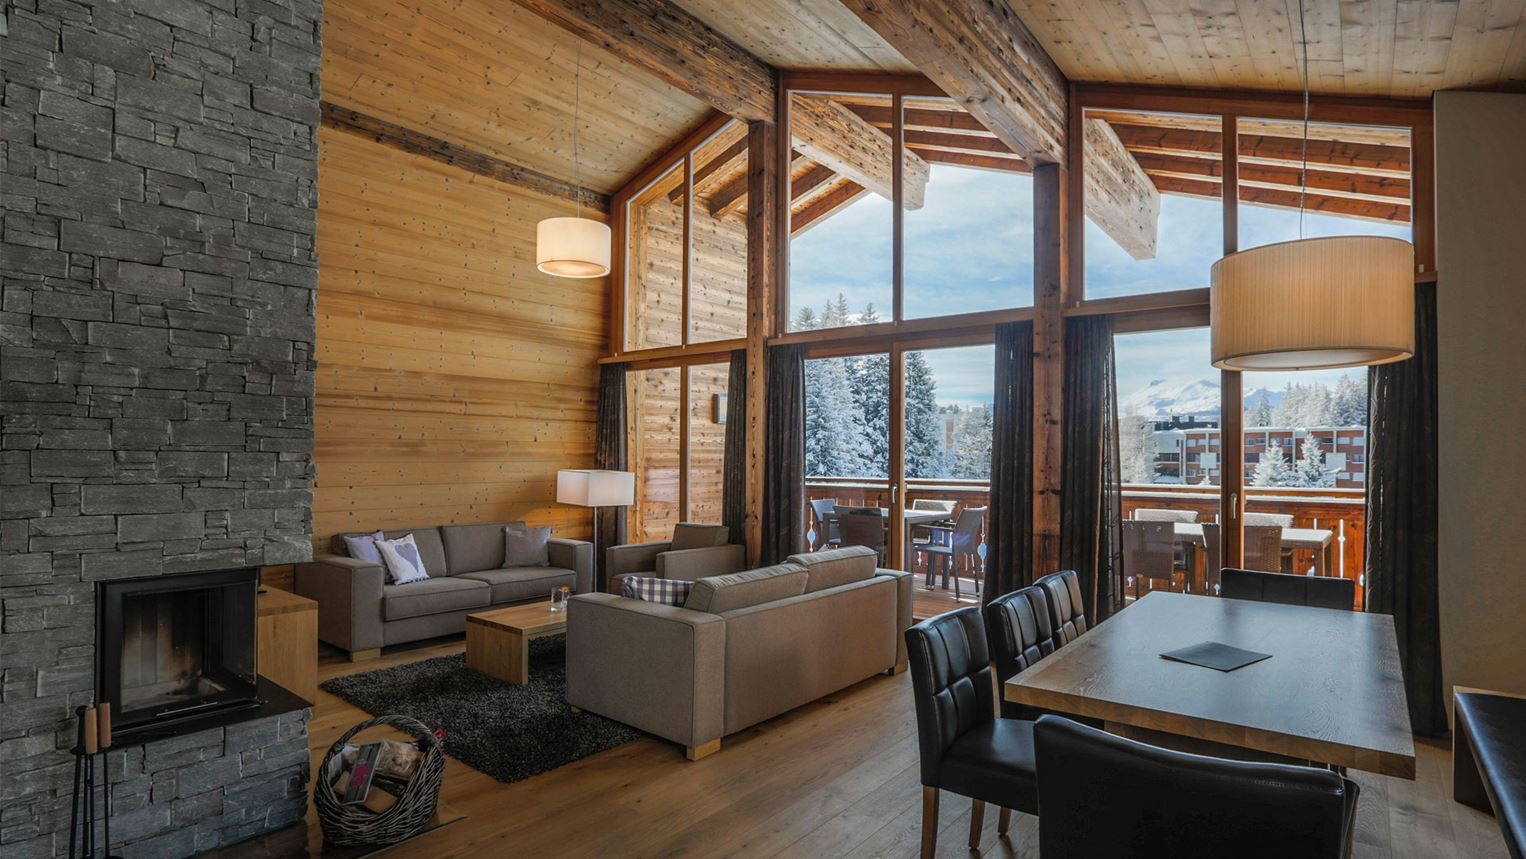 6 personen chalet luxus 6l in landal alpine lodge lenzerheide. Black Bedroom Furniture Sets. Home Design Ideas